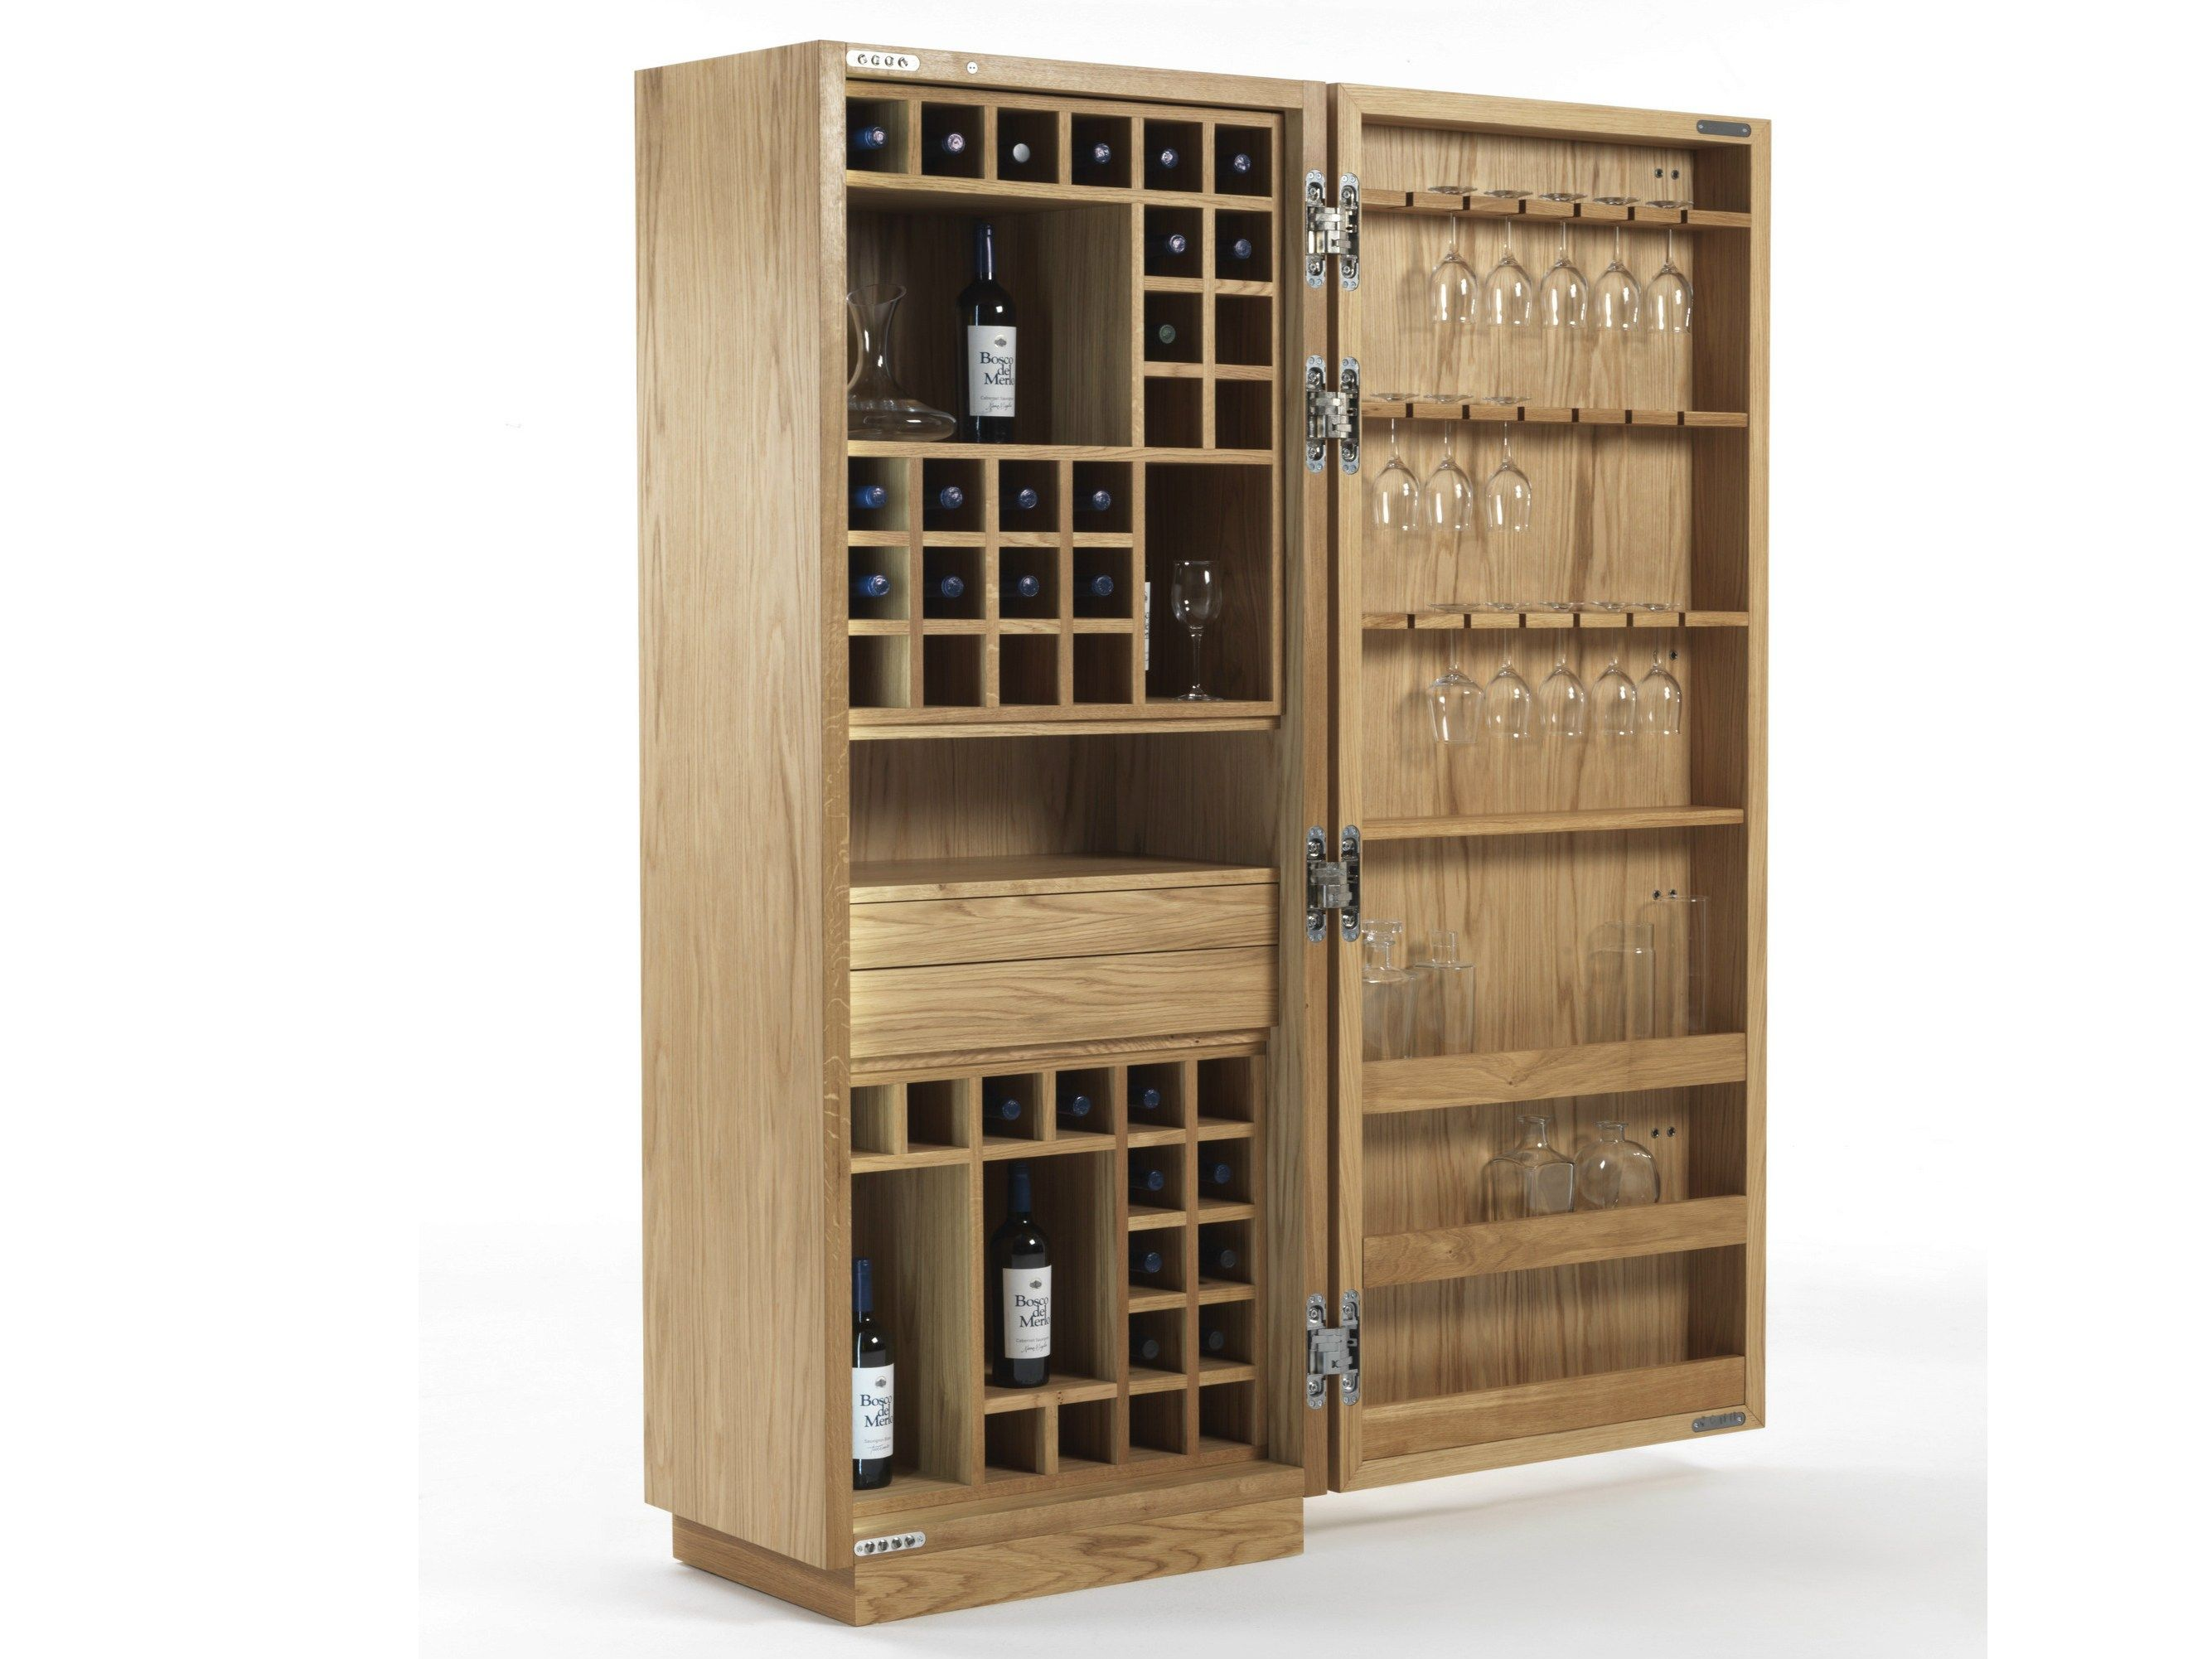 Cambusa wine small & wine small jumbo | Mobile bar, Wooden bar and ...